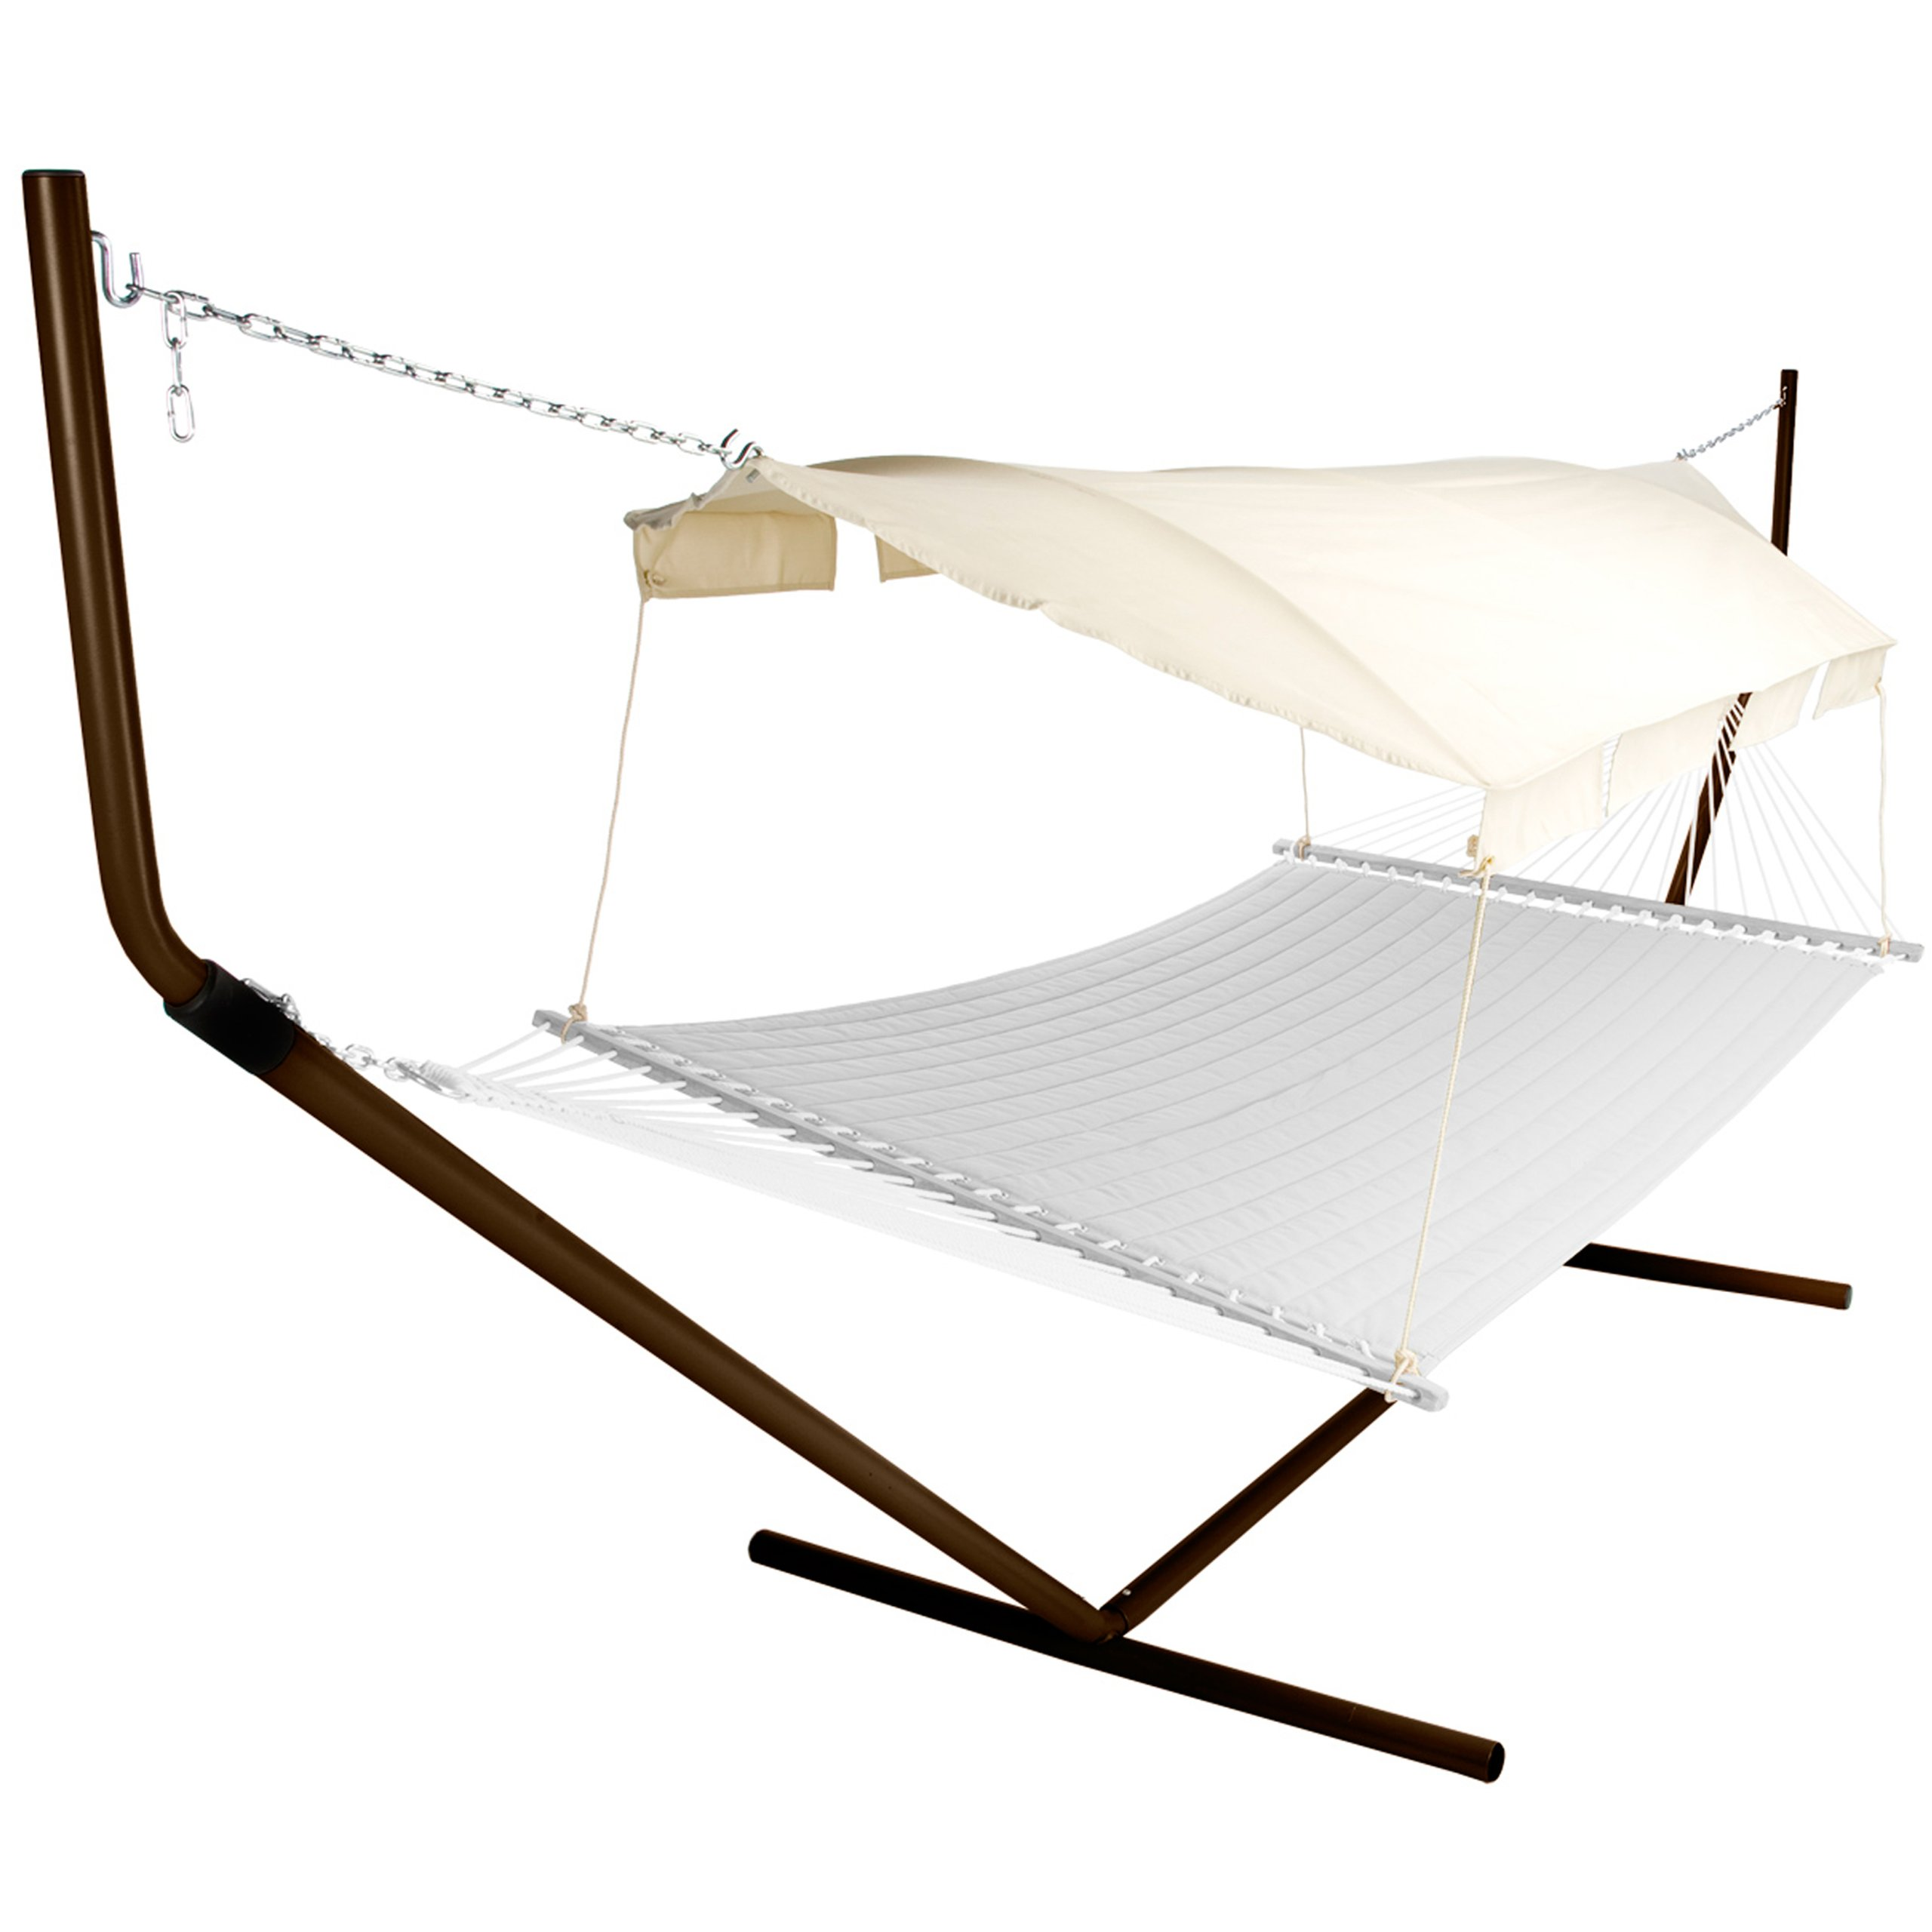 Pawley's Island Hammock Canopy with Tan/Natural Canopy Color and Bronze Support Poles by Pawley's Island (Image #1)